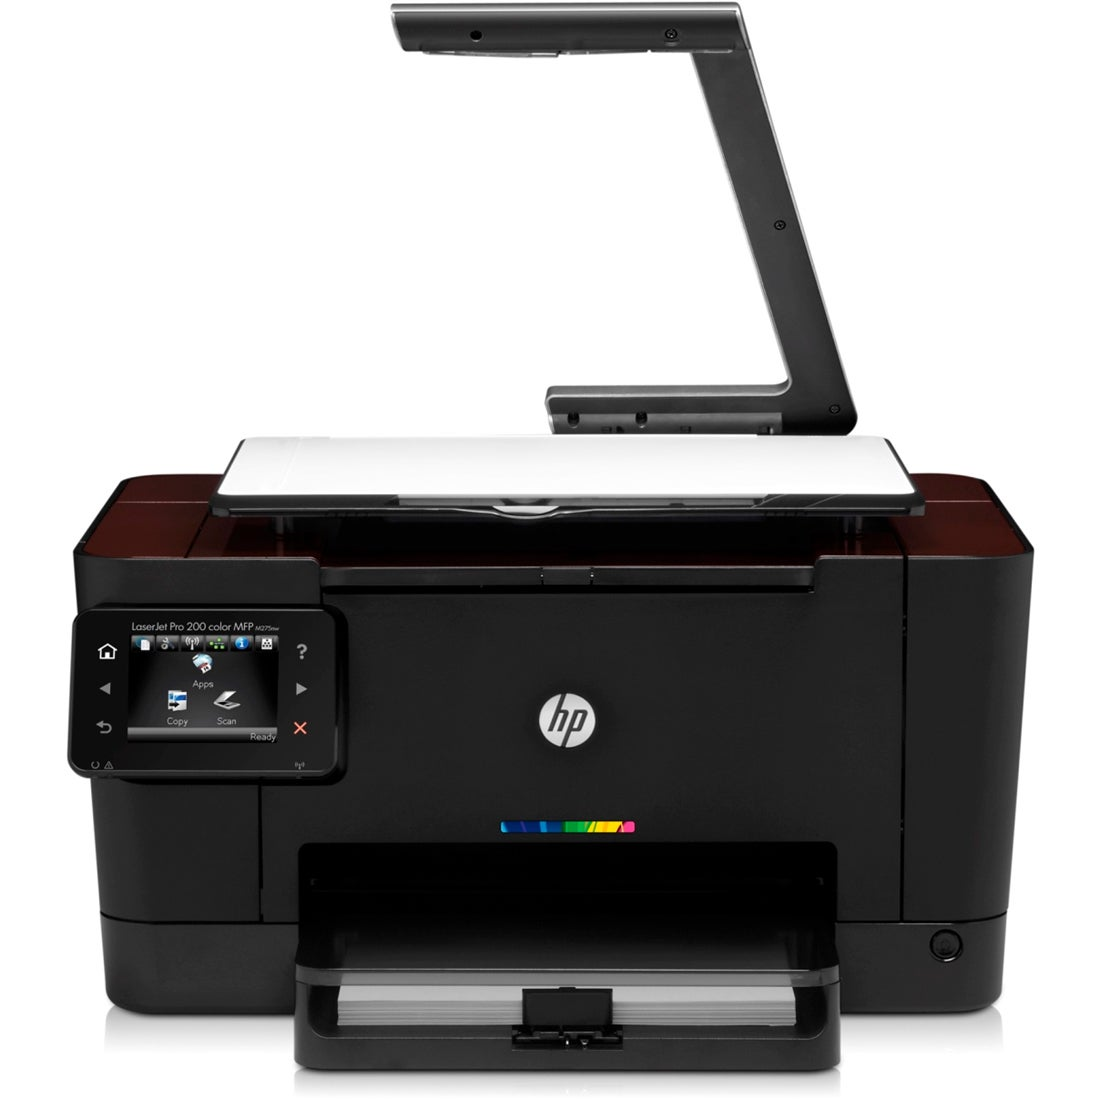 HP LaserJet Pro 200 M275NW Laser Multifunction Printer - Refurbished - Thumbnail 0